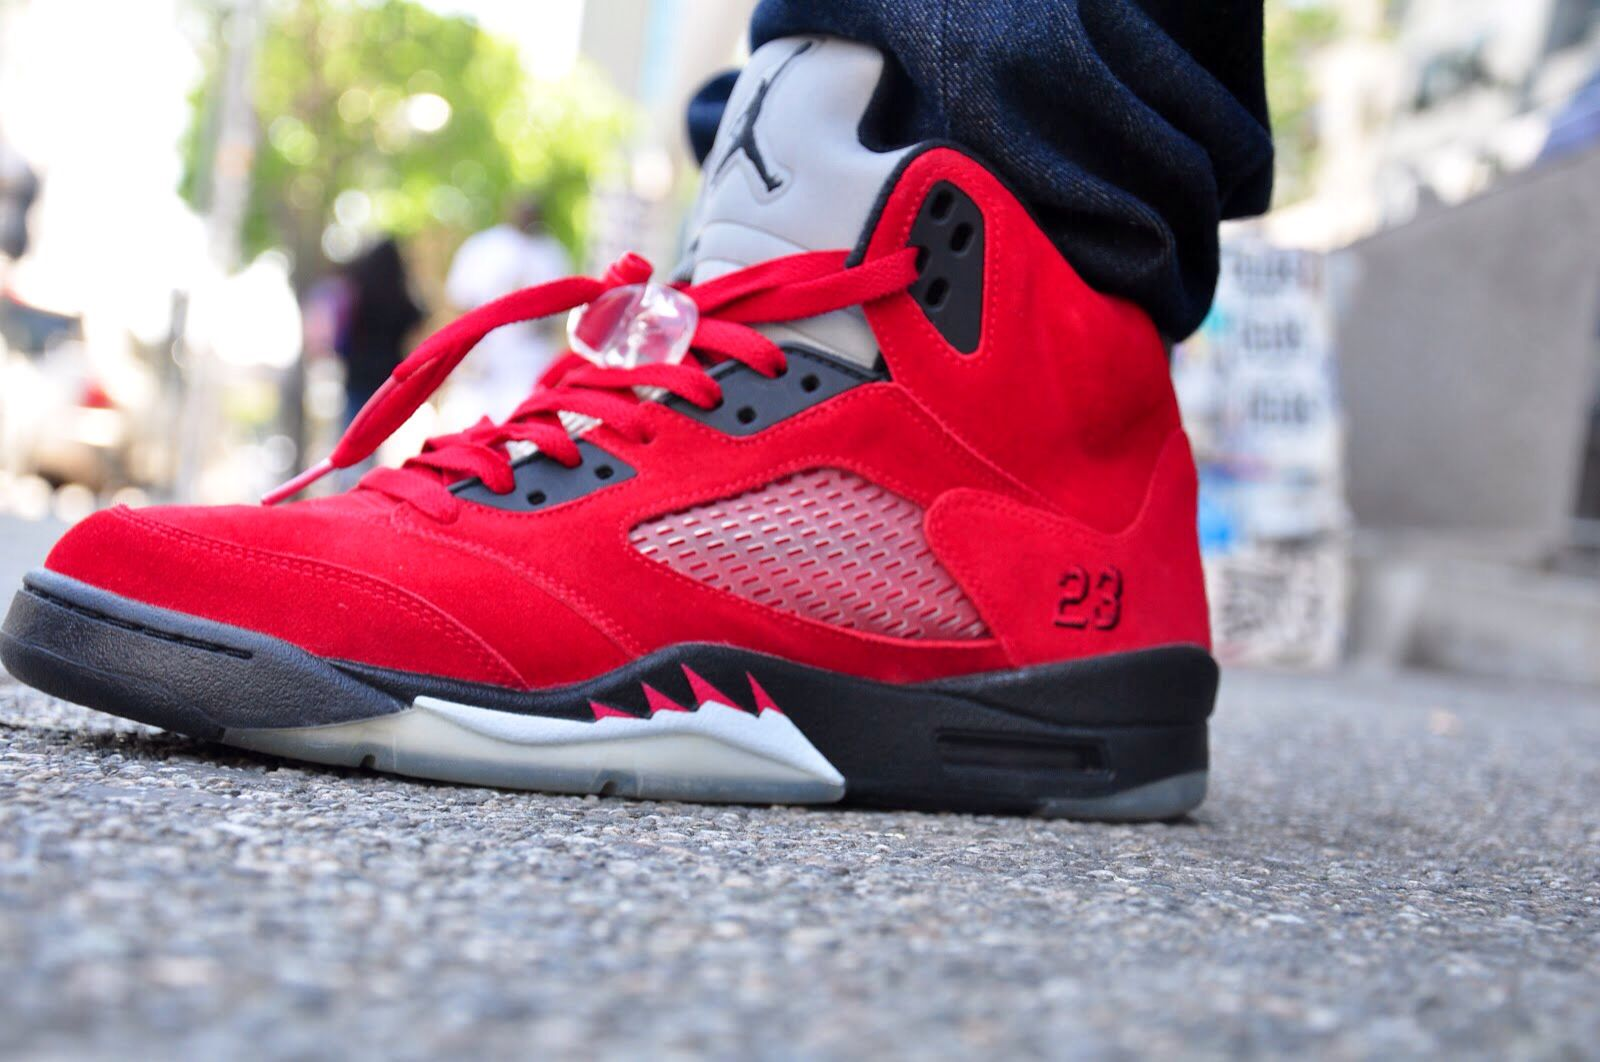 pretty nice f7d96 02466 ... discount code for raging bull jordan 5s 9fdef 0f151